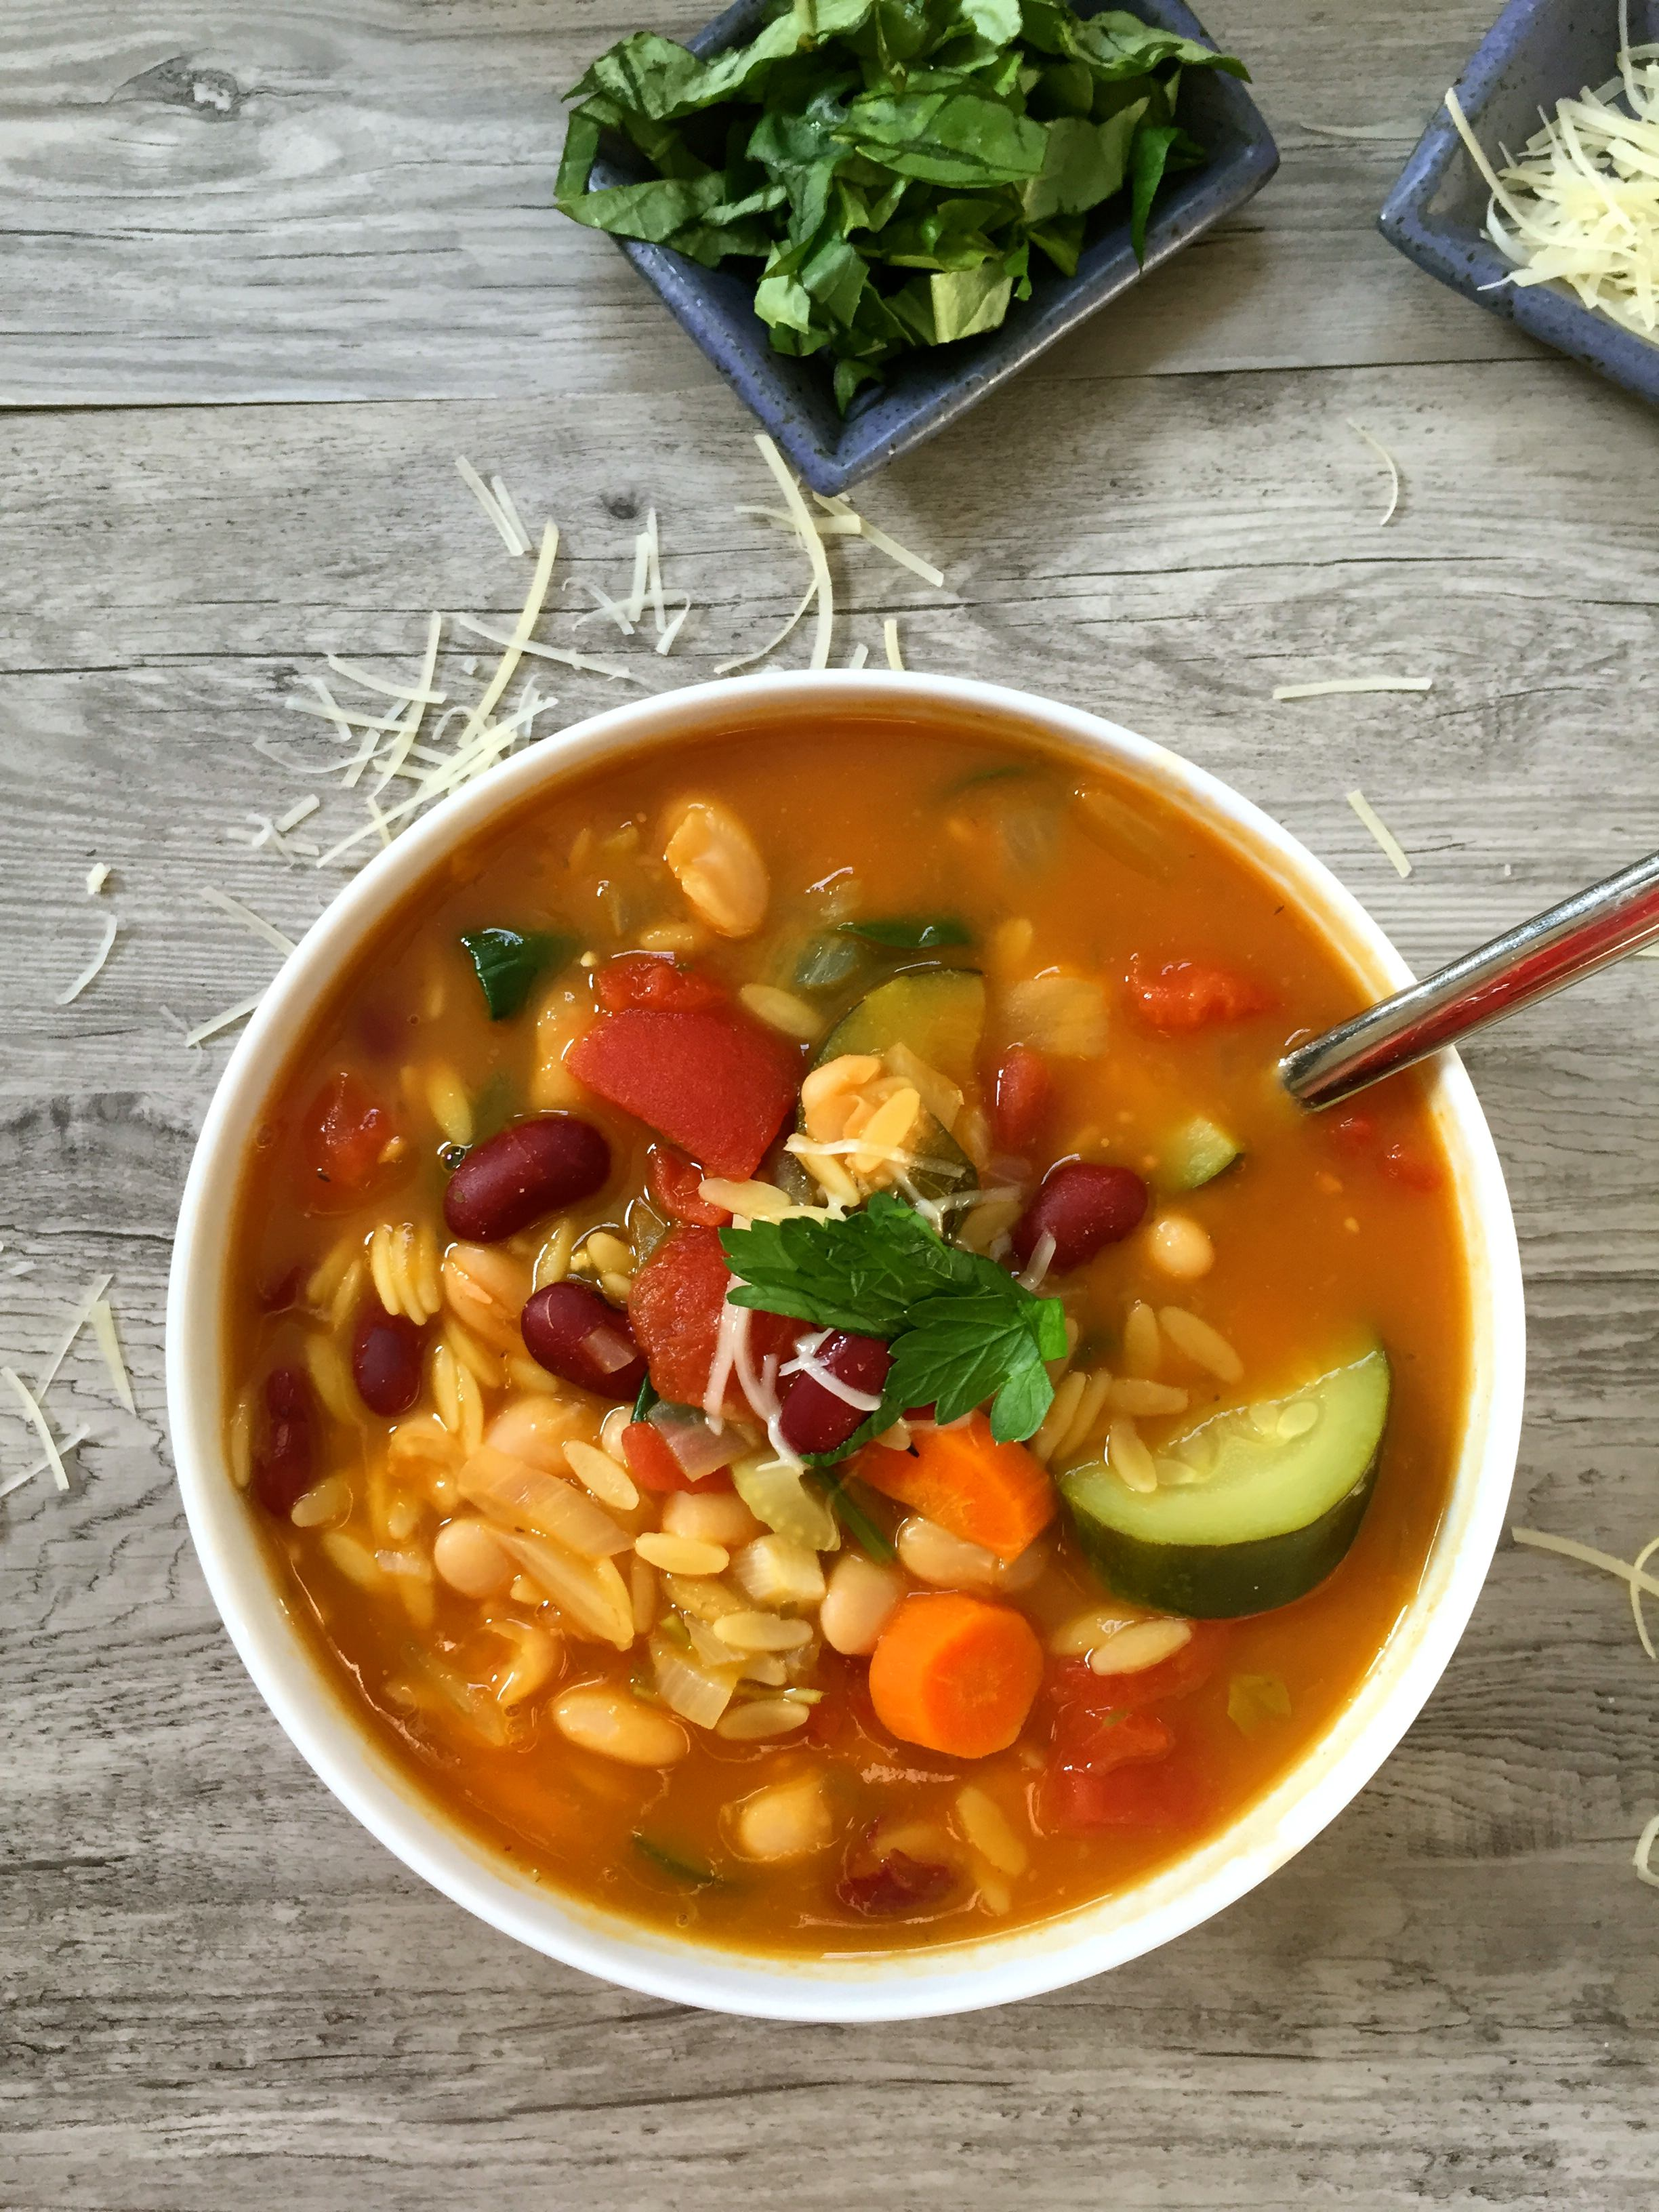 30 Minute Orzo Minestrone Soup